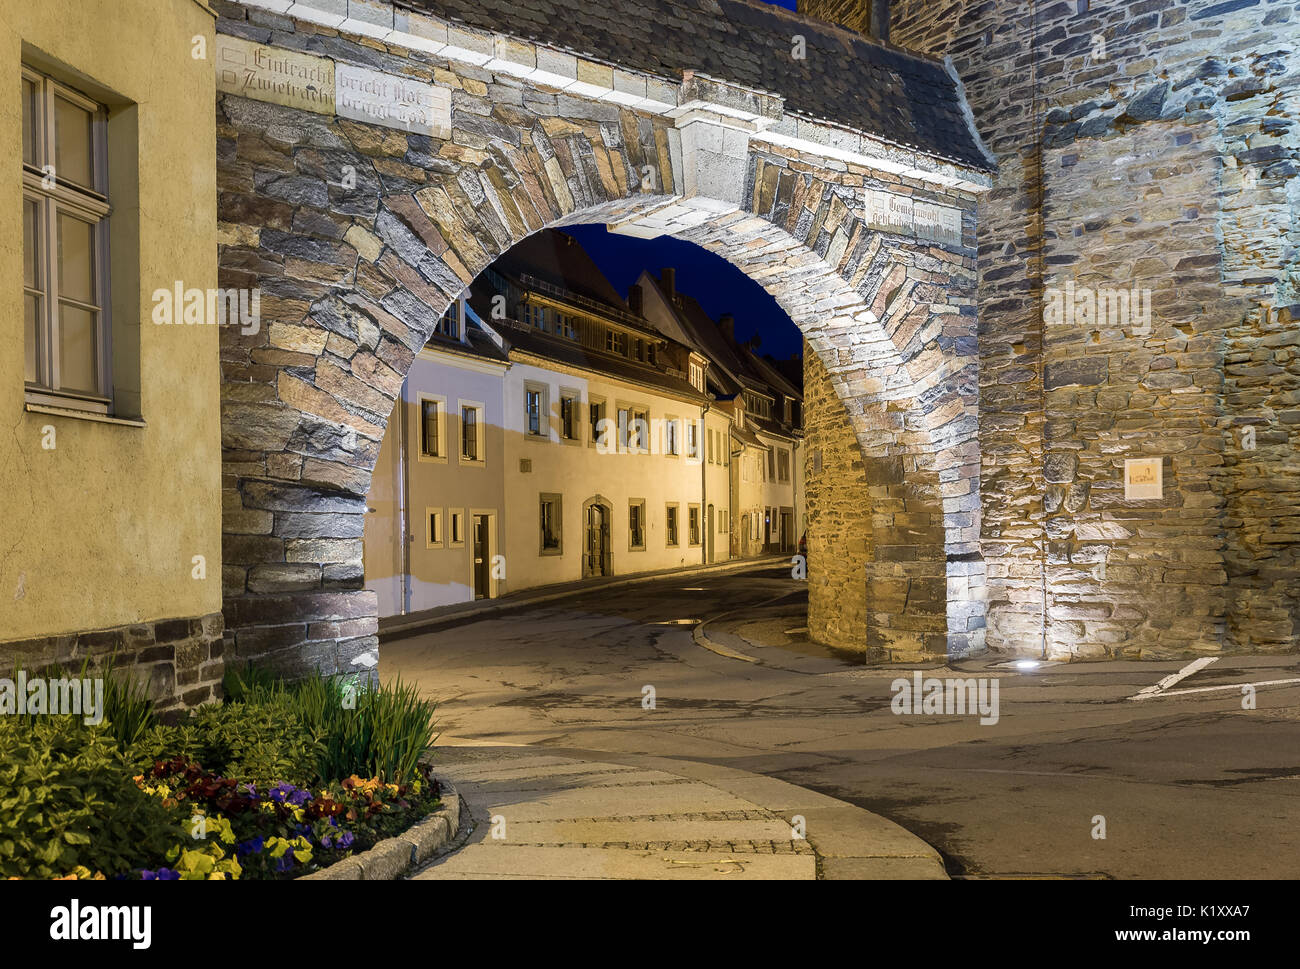 historic city gate in freiberg at night - Stock Image